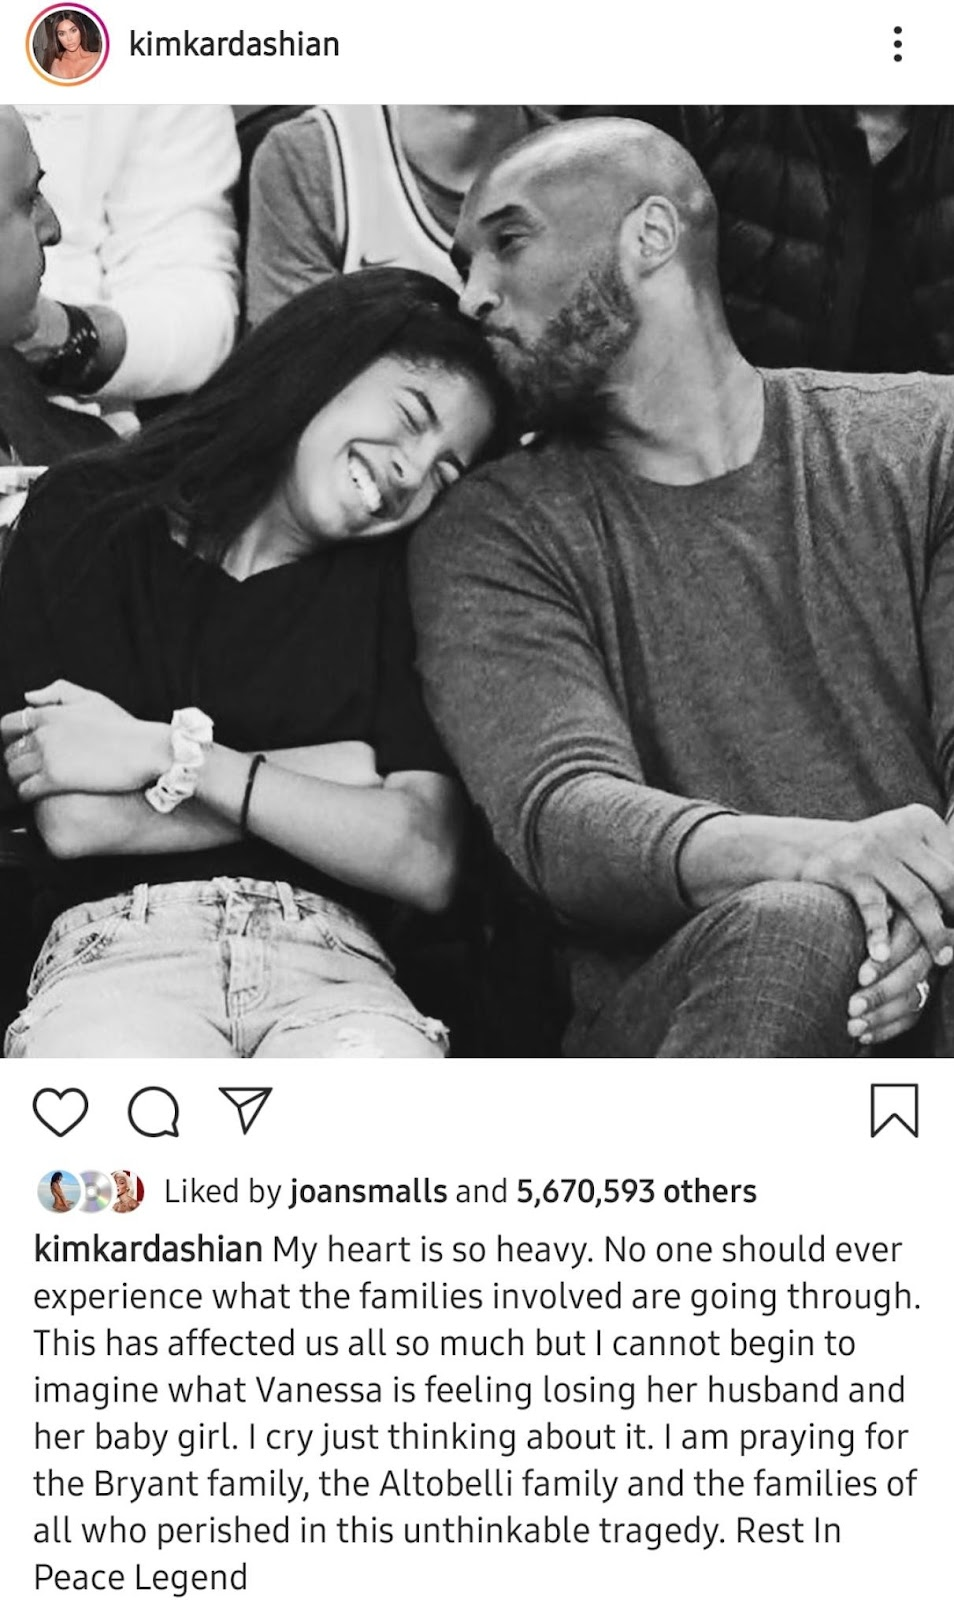 kimkardashian Liked by joansmalls and 5,670,593 others kimkardashian My heart is so heavy. No one should ever experience what the families involved are going through. This has affected us all so much but I cannot begin to imagine what Vanessa is feeling losing her husband and her baby girl. I cry just thinking about it. I am praying for the Bryant family, the Altobelli family and the families of all who perished in this unthinkable tragedy. Rest In Peace Legend